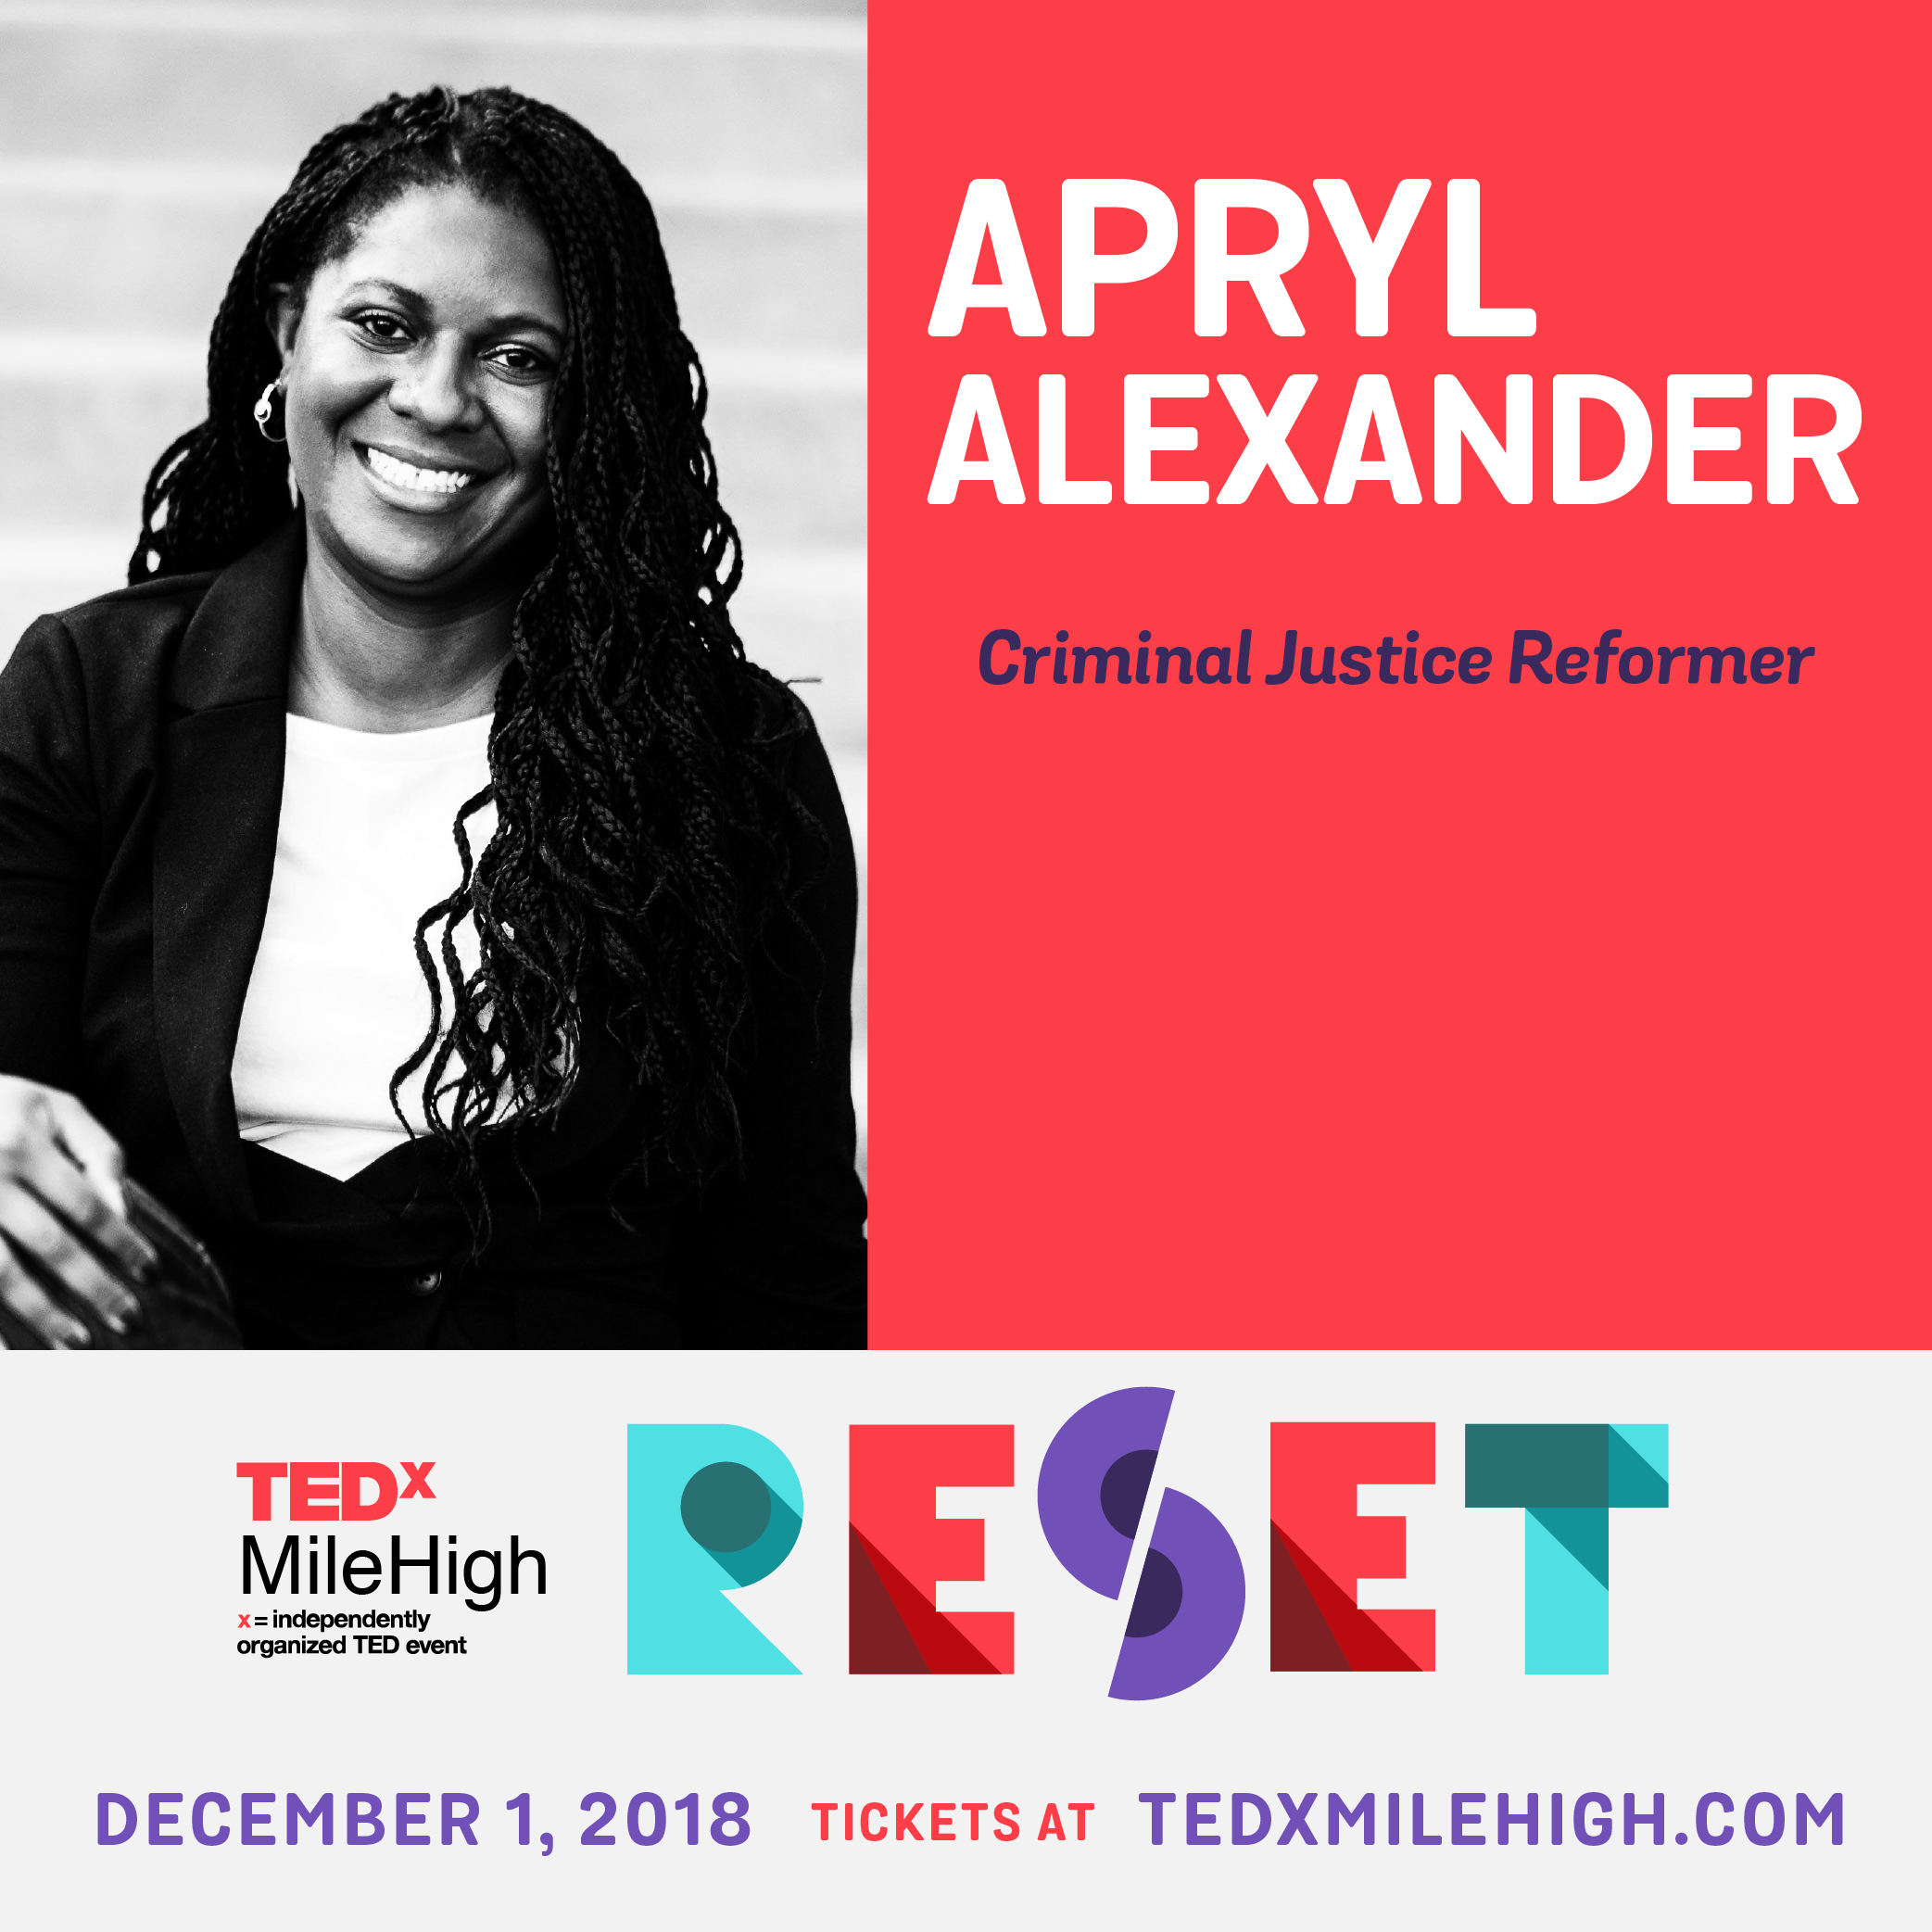 TED_RESET_SpeakerGraphics_Annoucement#1_Apryl.png